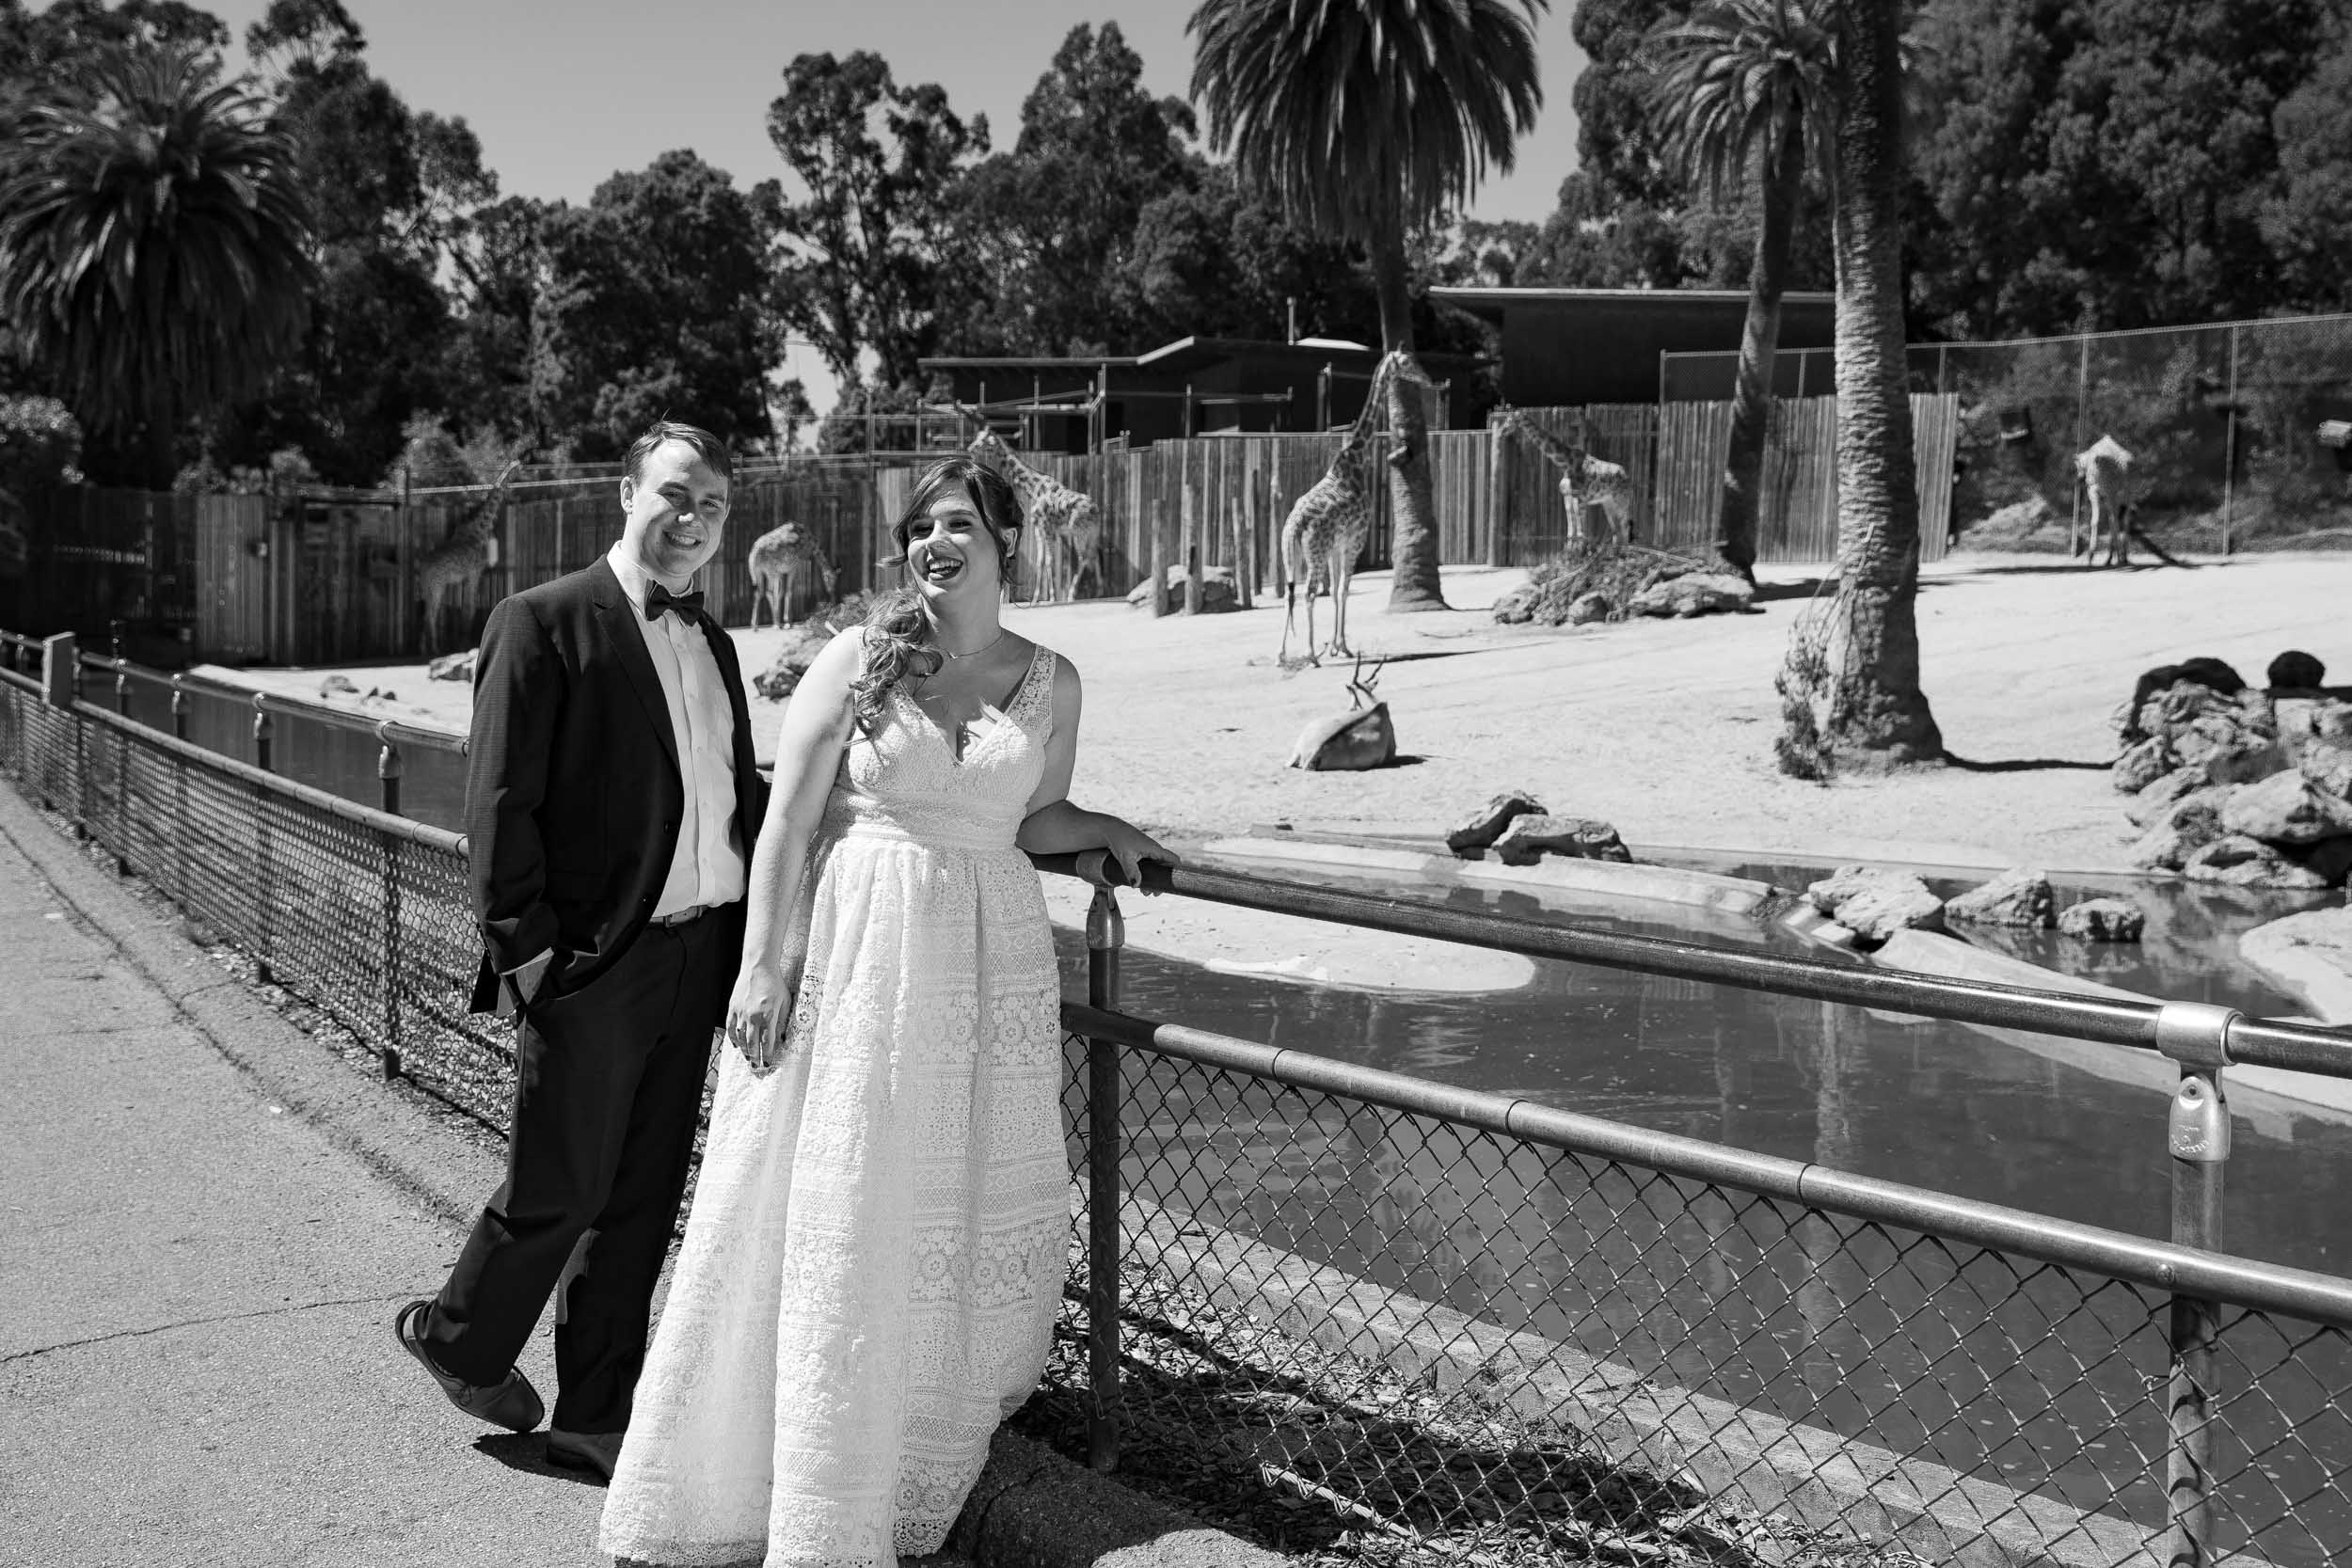 Oakland-Zoo-wedding 23.jpg